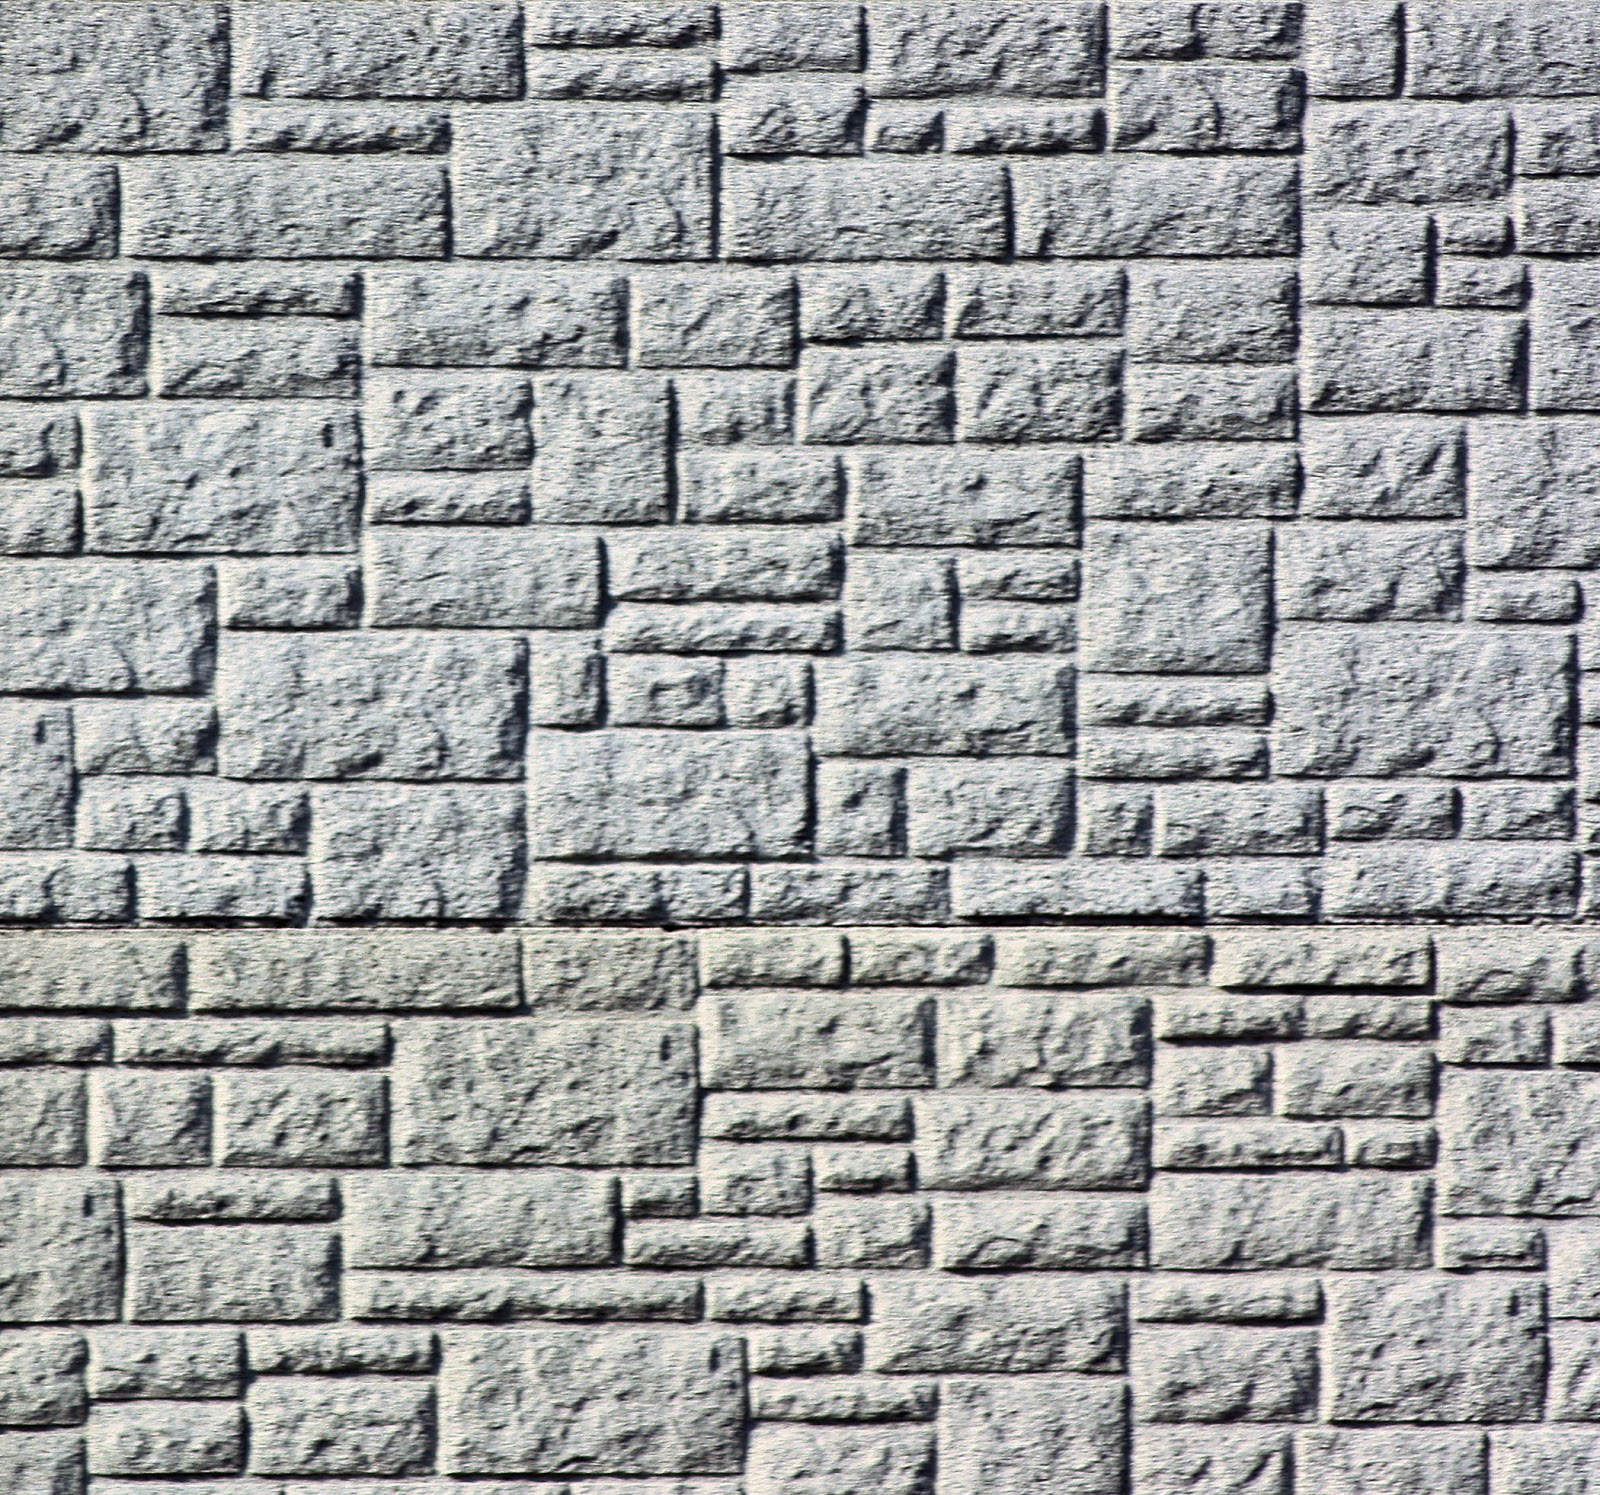 patterns on brick walls - photo #27